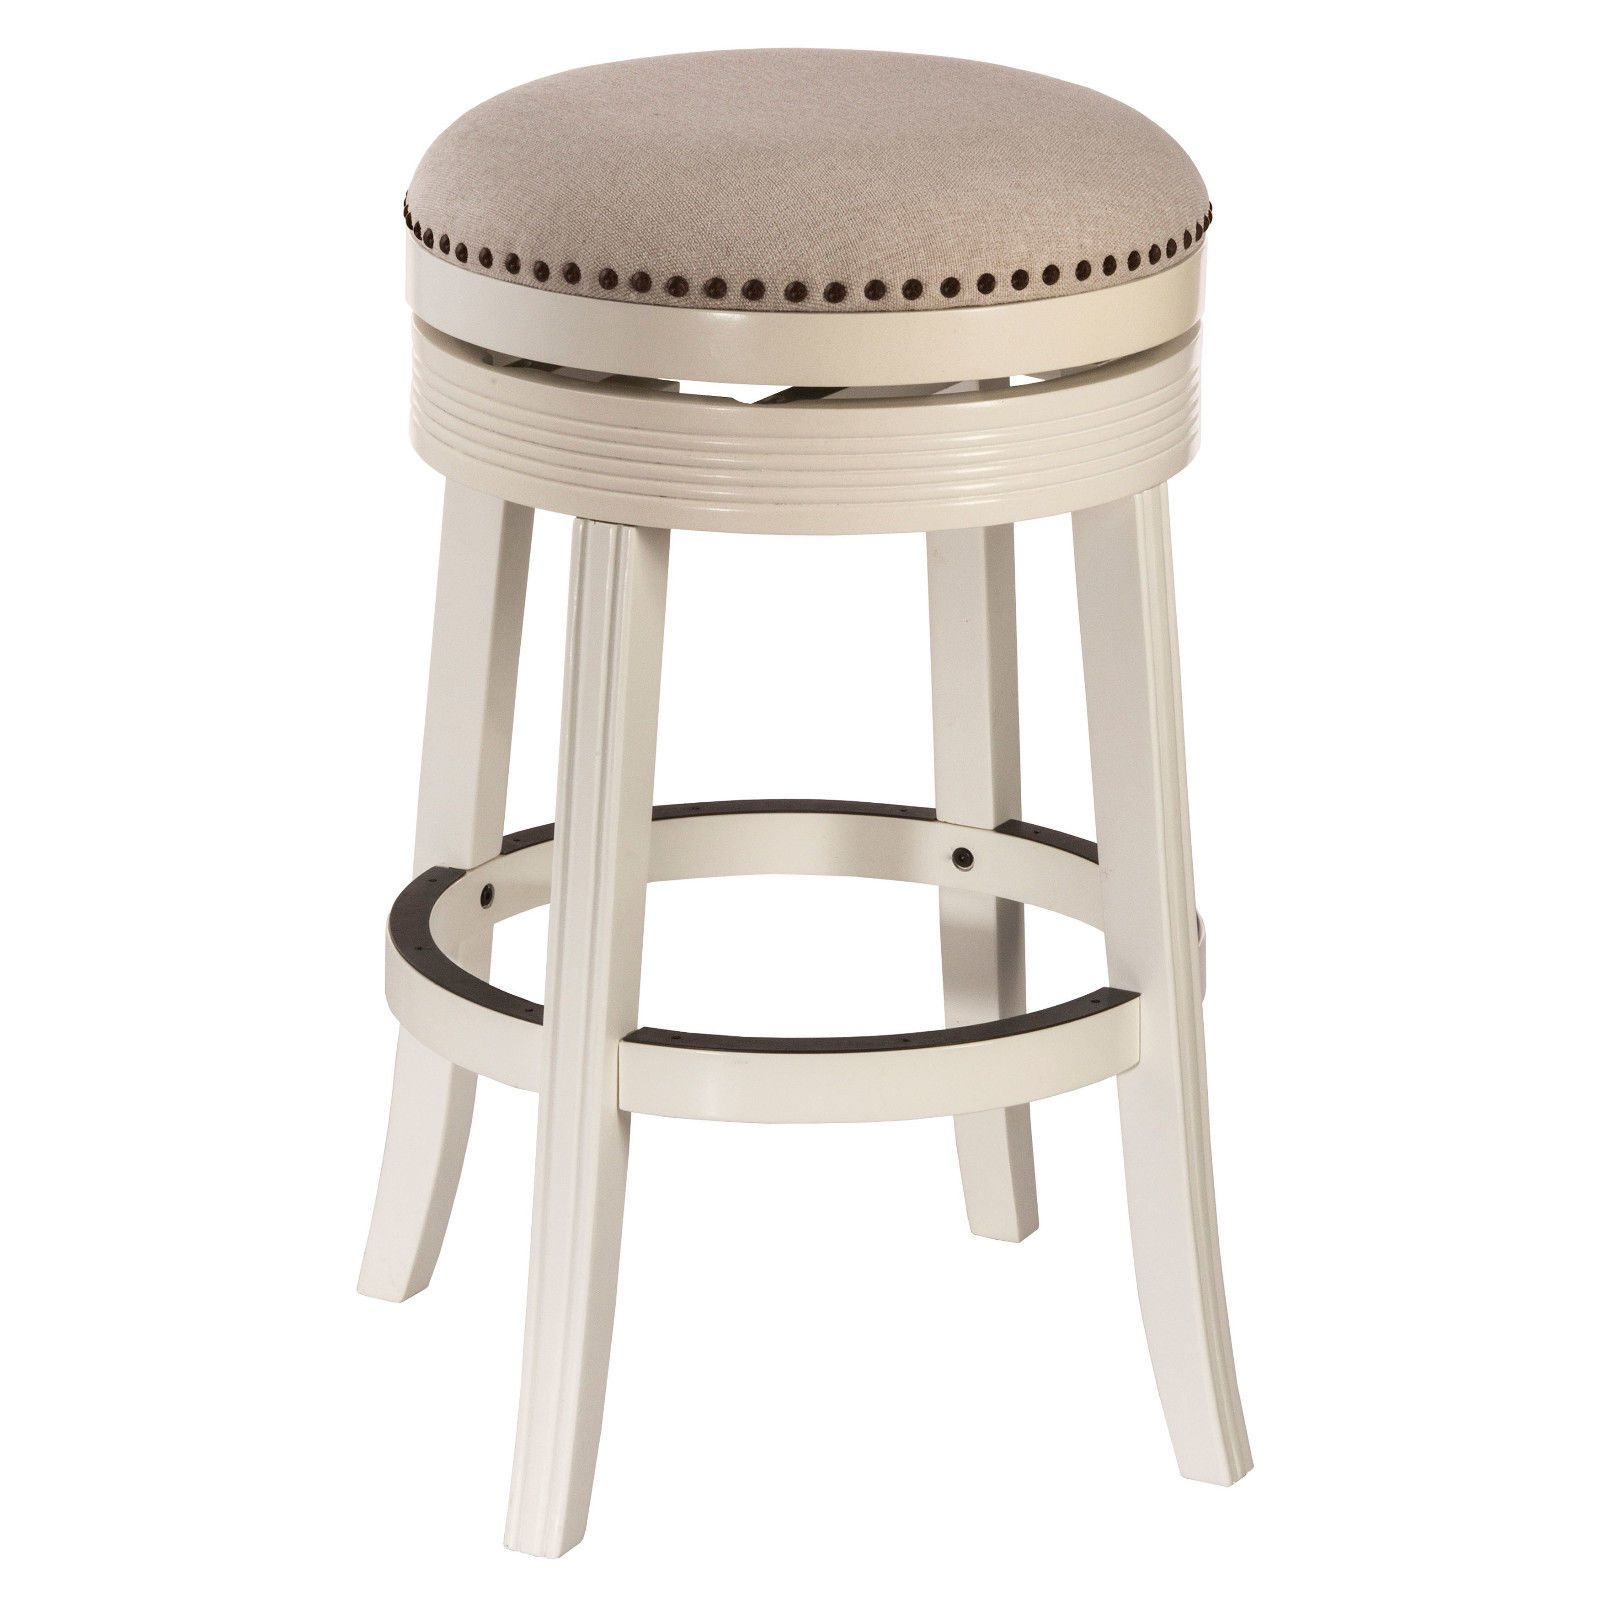 Bar Stools 153928 White Finished Round Seat Wood Backless Swivel